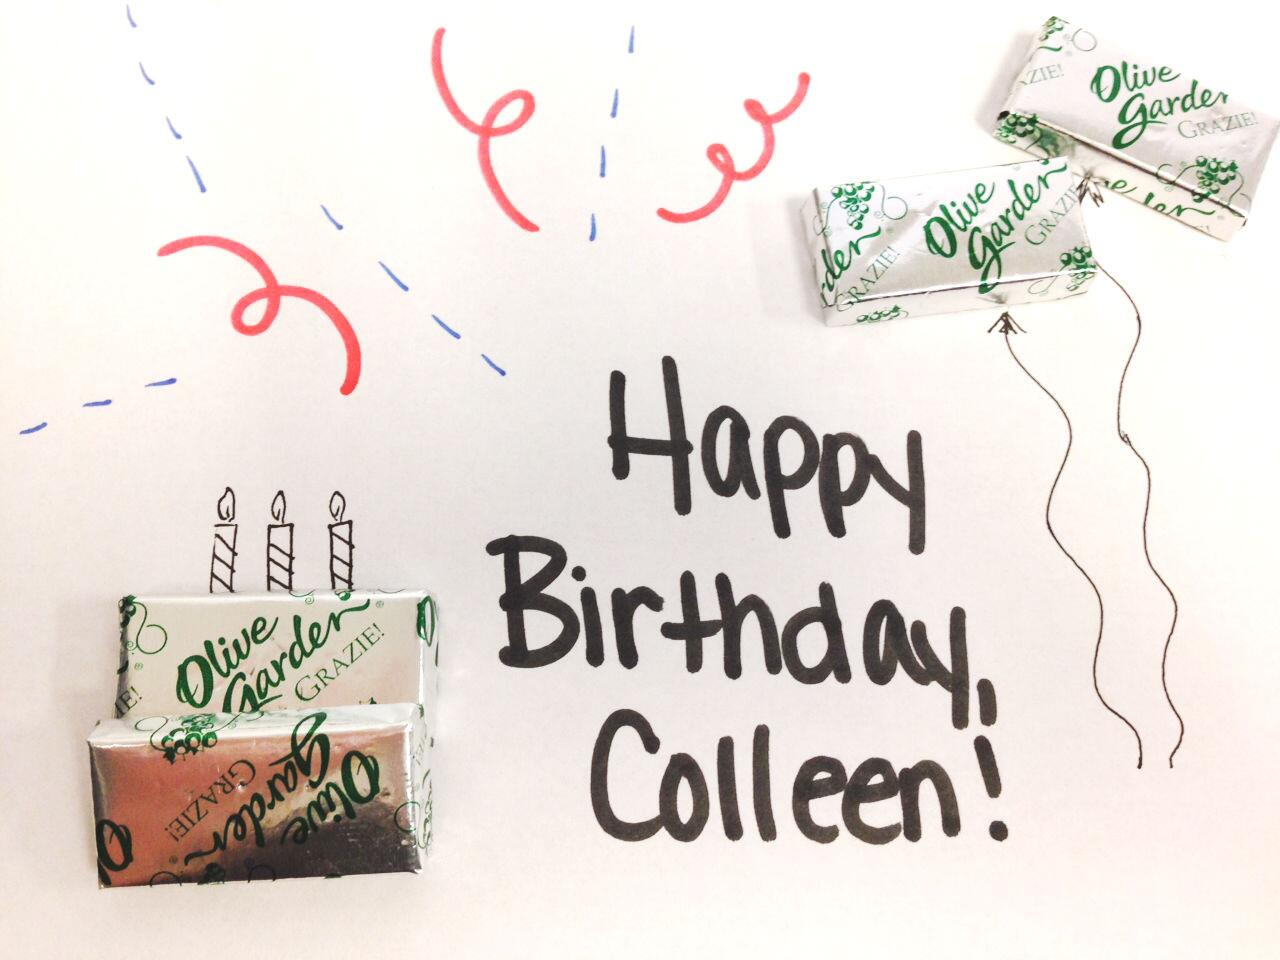 Olive Garden On Twitter Cmkinninger Happy Birthday Colleen We Hope You Have A Very Special